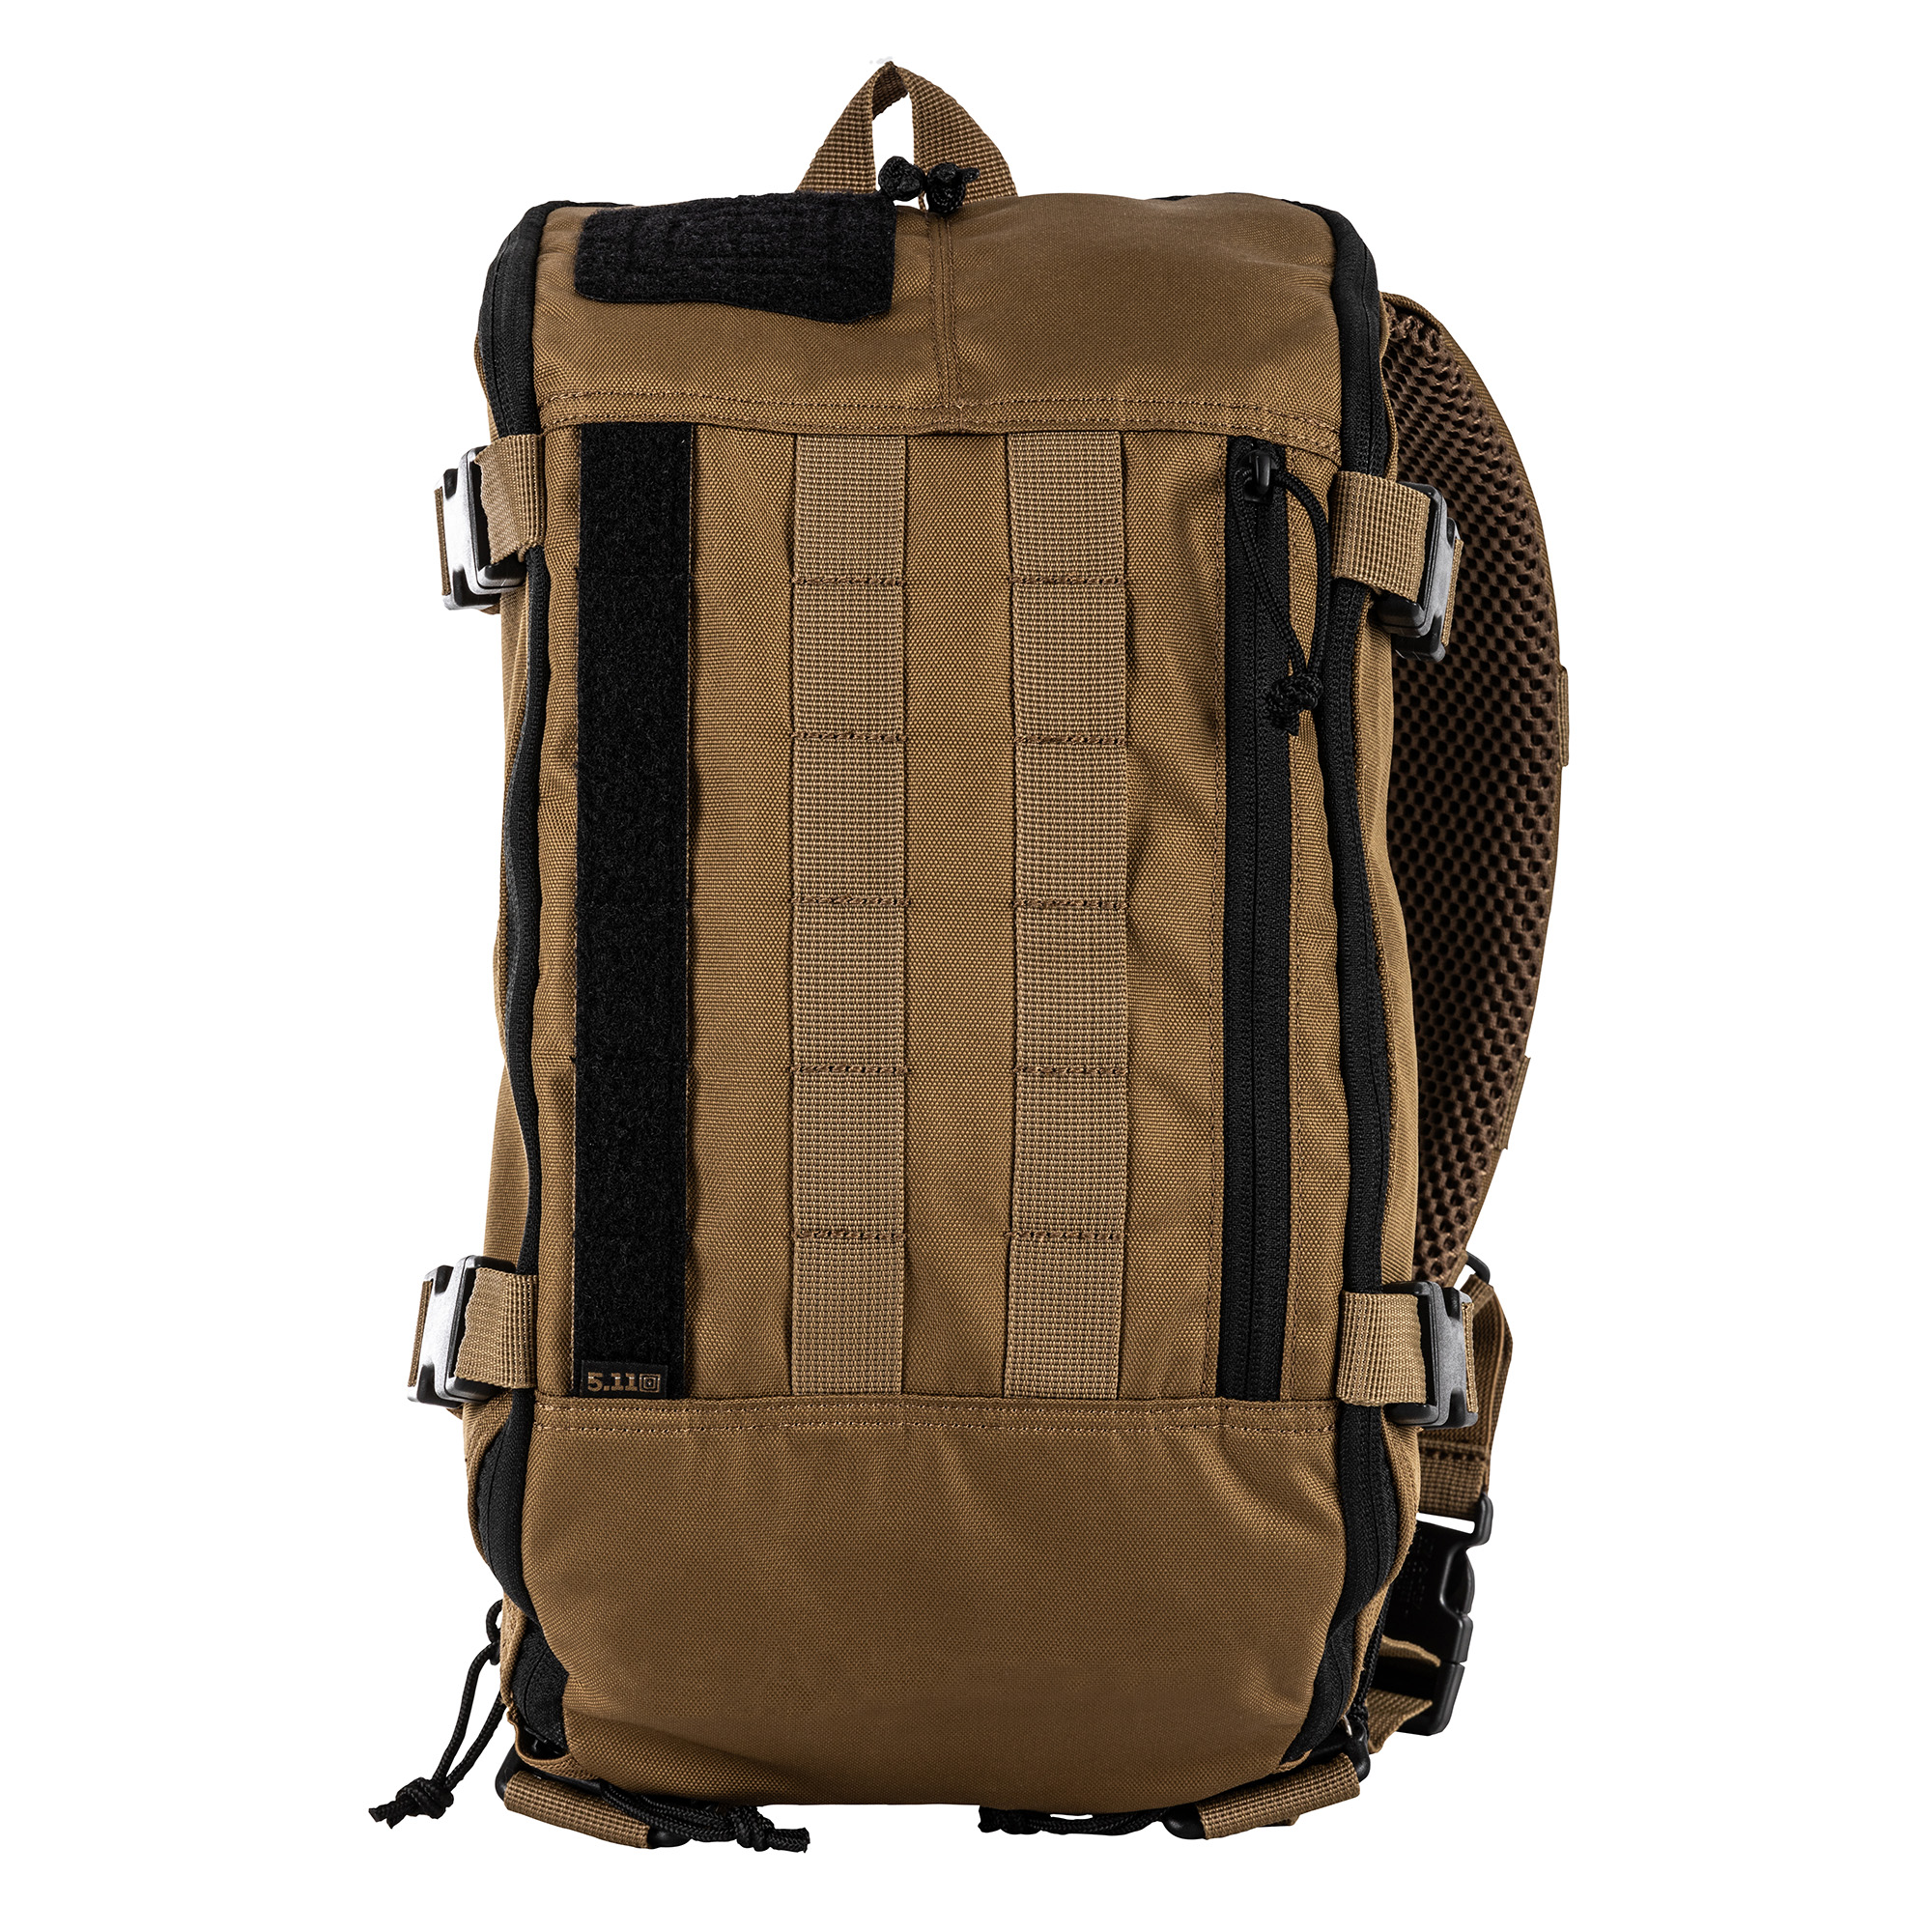 Túi 5.11 Tactical RAPID SLING PACK 10L – Kangaroo